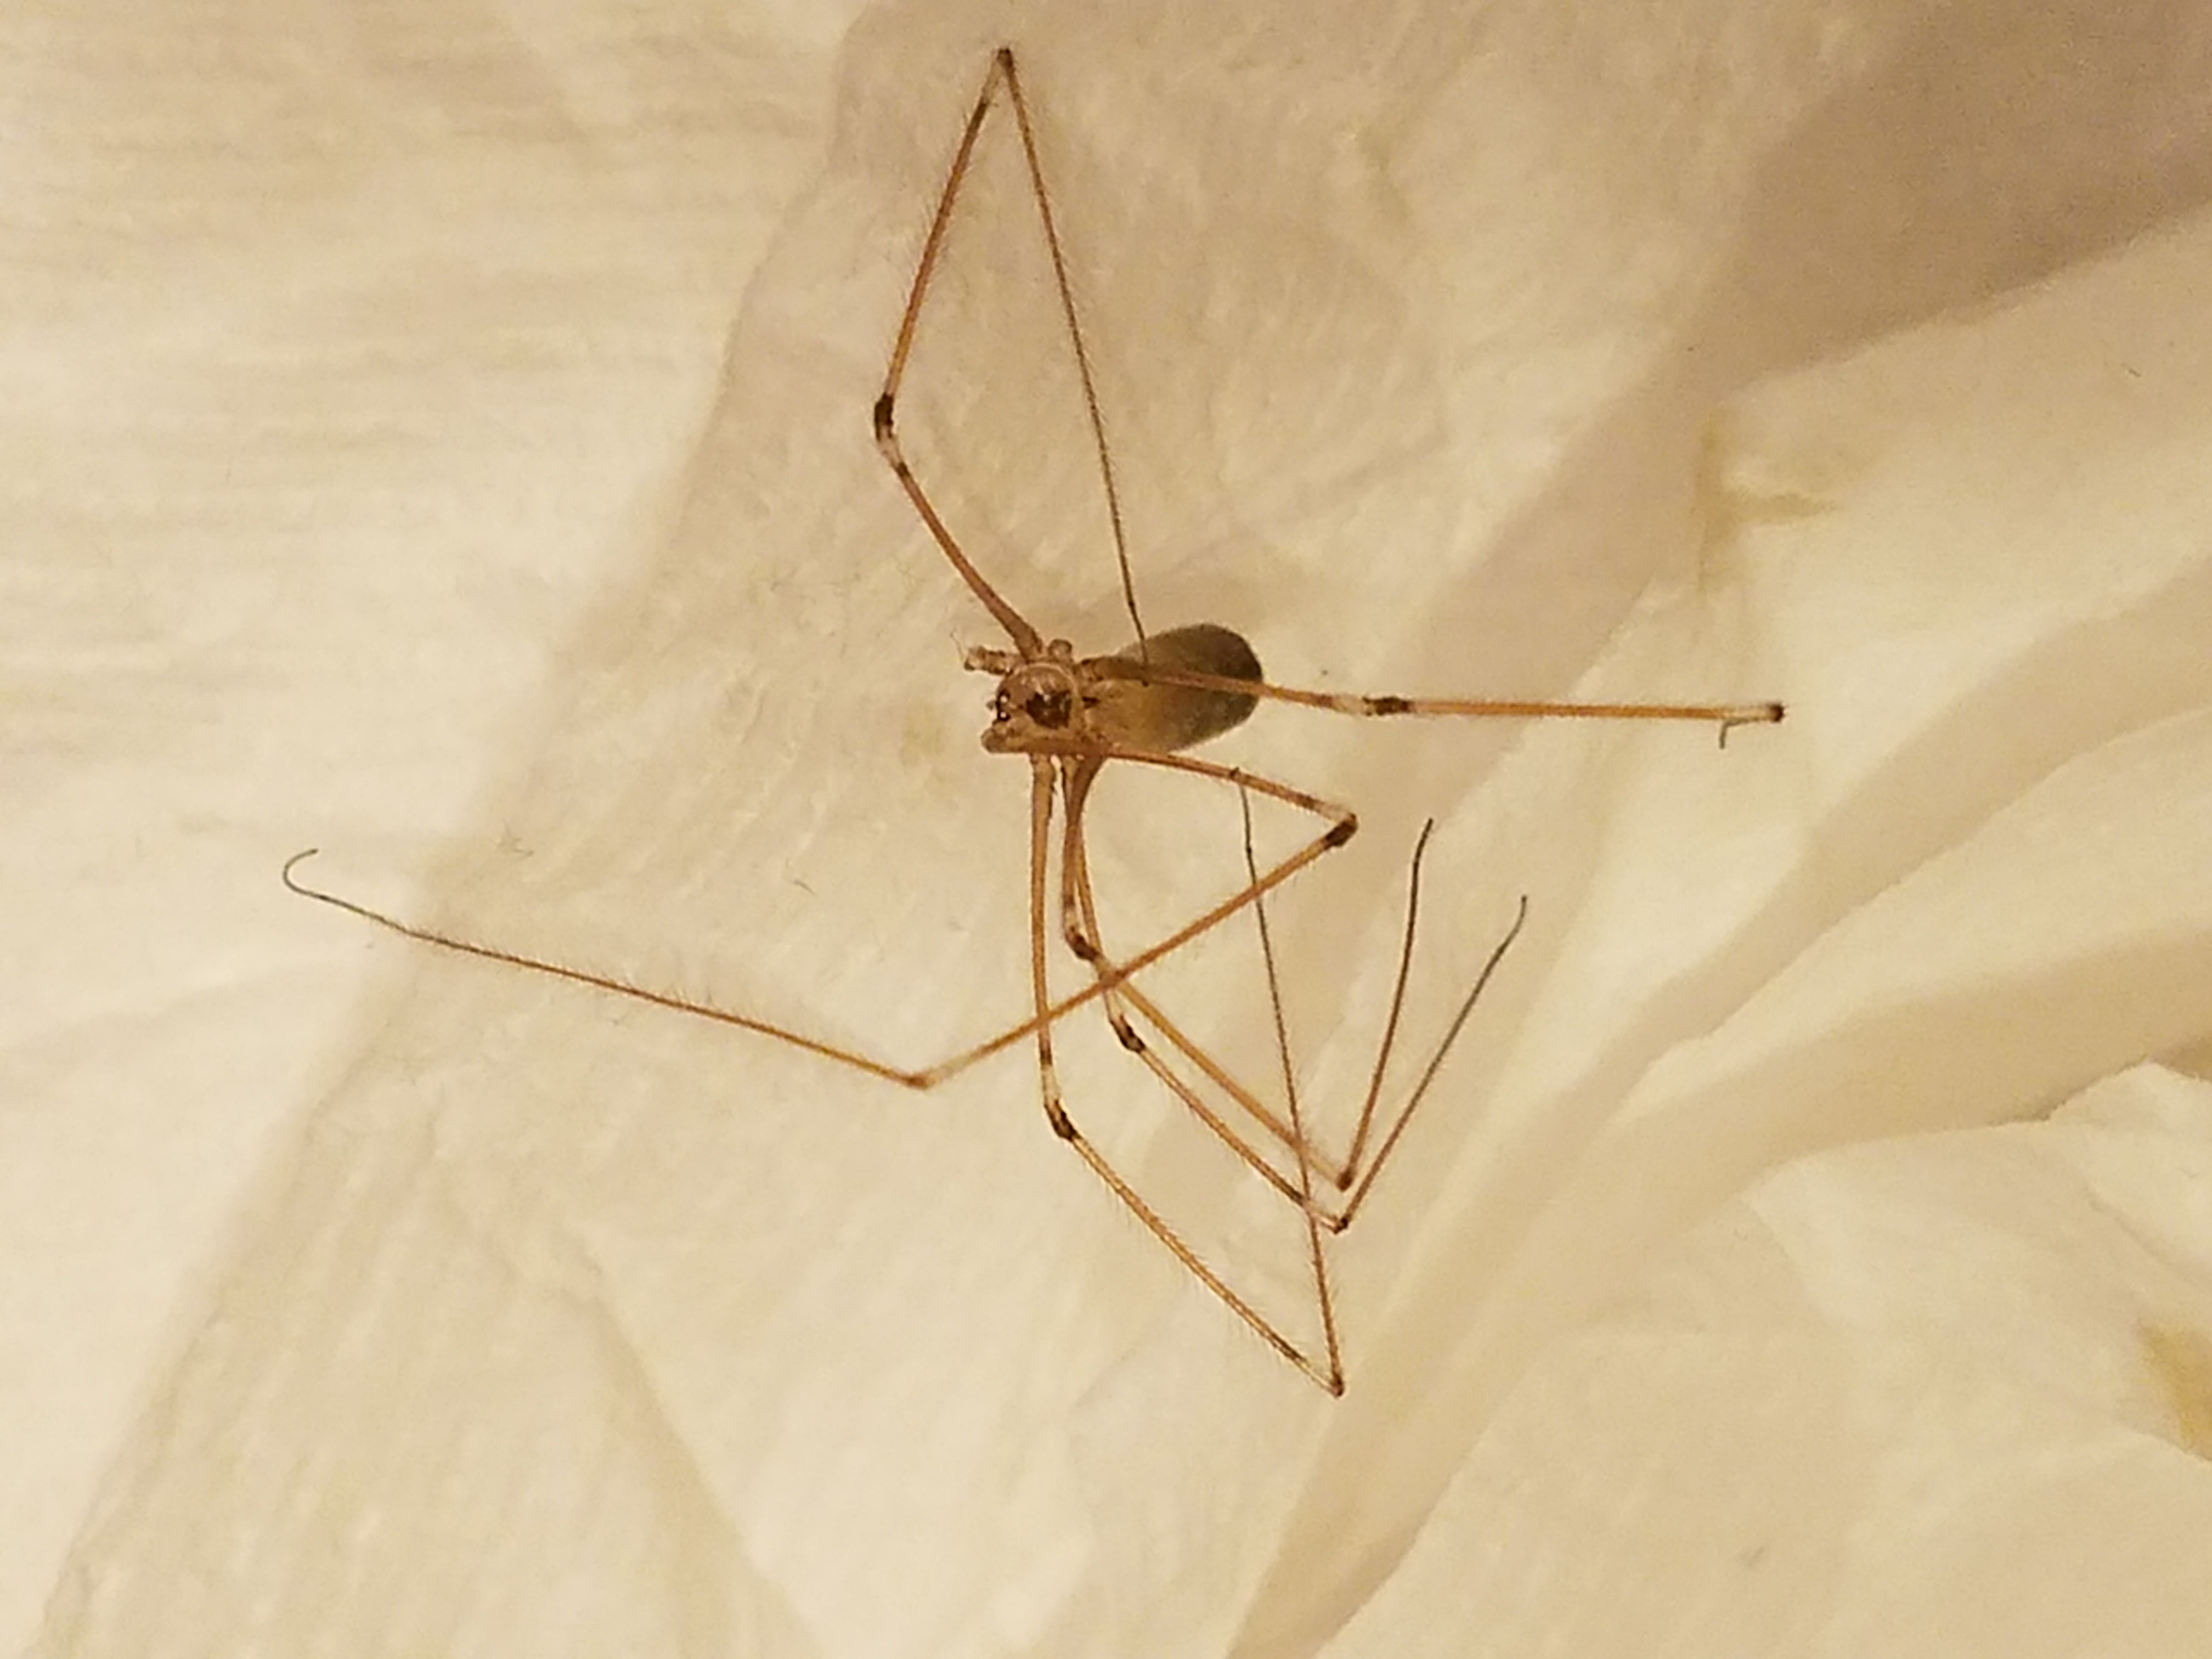 Picture of Pholcus phalangioides (Long-bodied Cellar Spider) - Dorsal